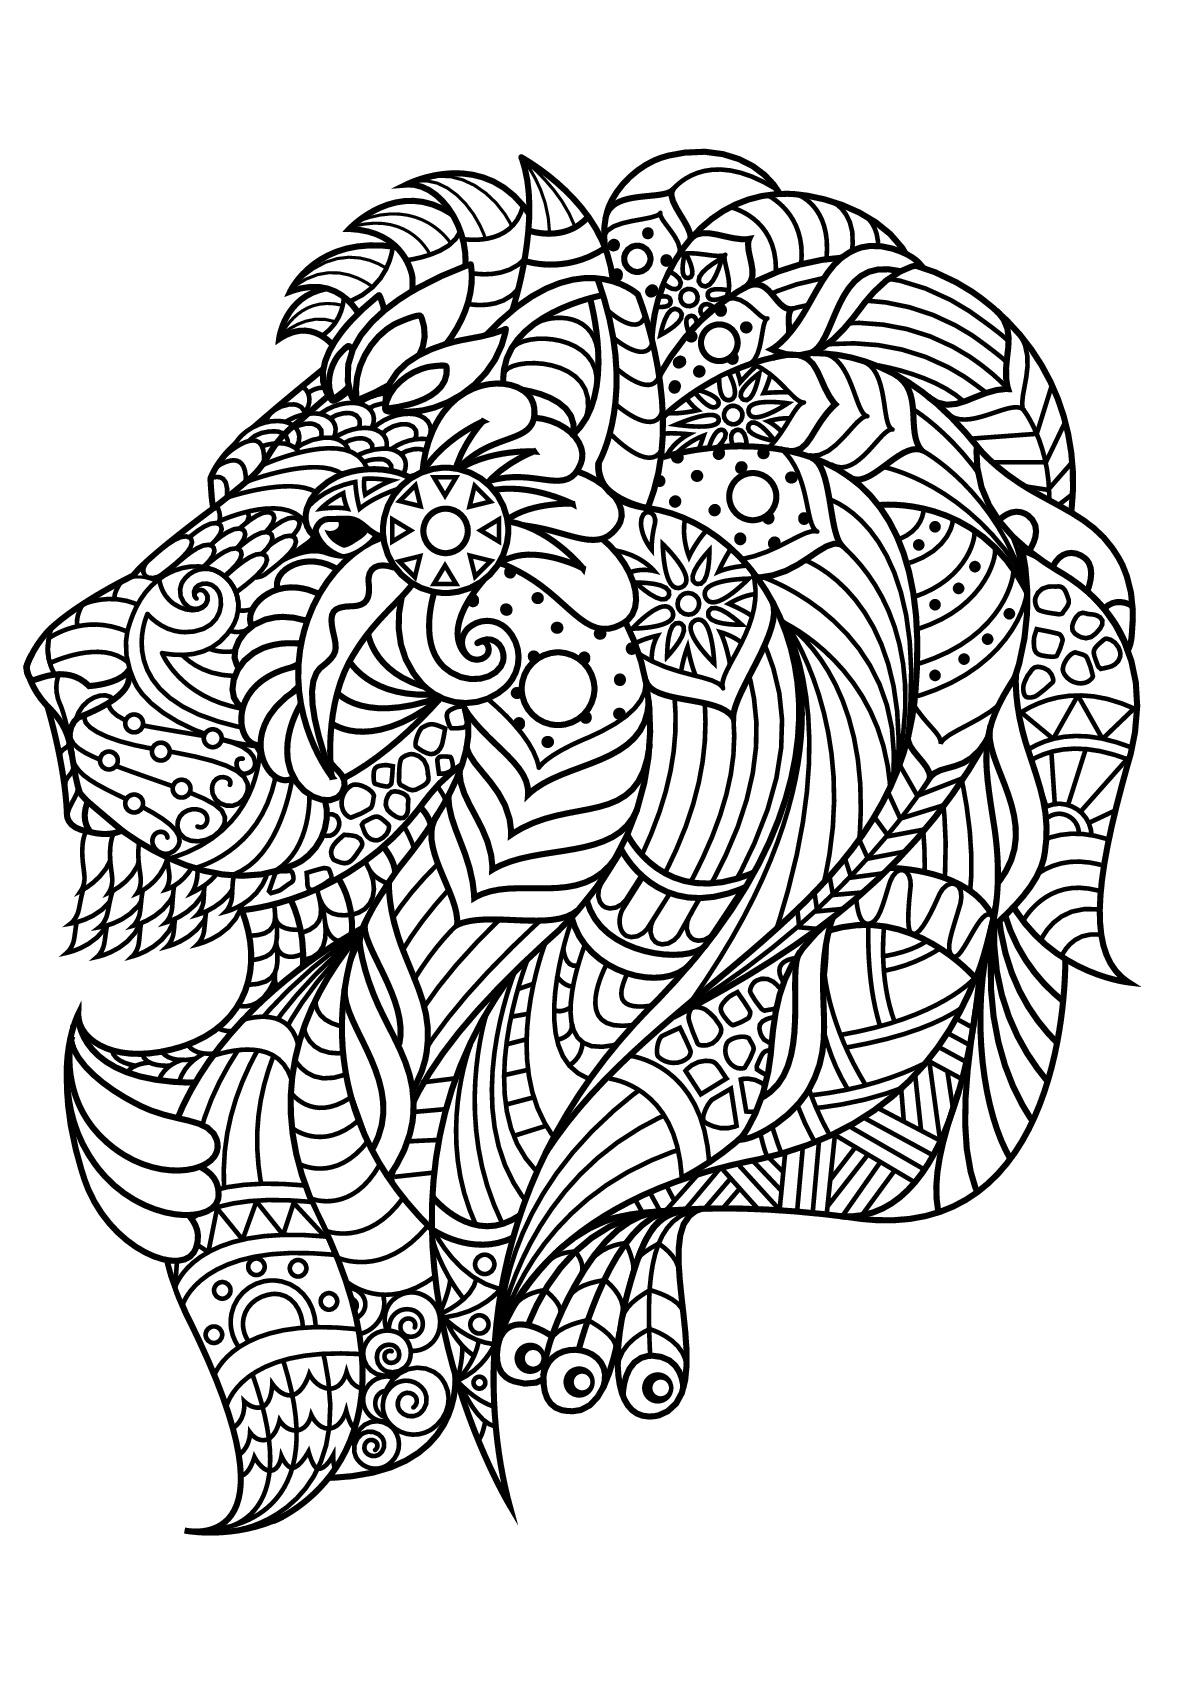 colouring images of lion free book lion lions adult coloring pages lion of colouring images